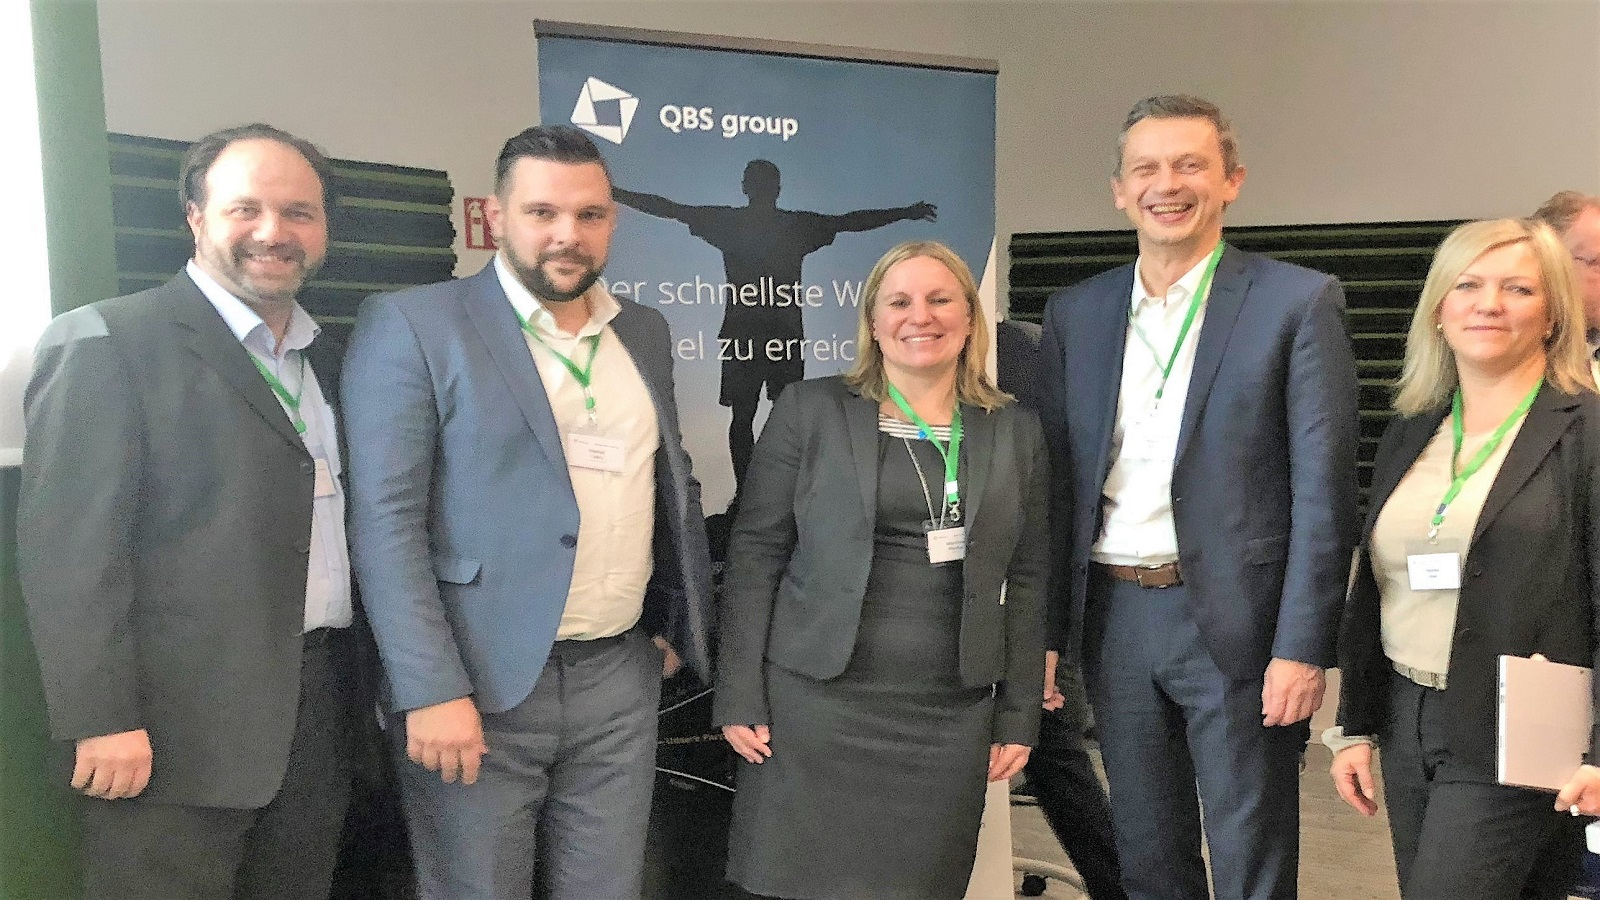 Crypto Future attends annual QBS network meeting in Munich